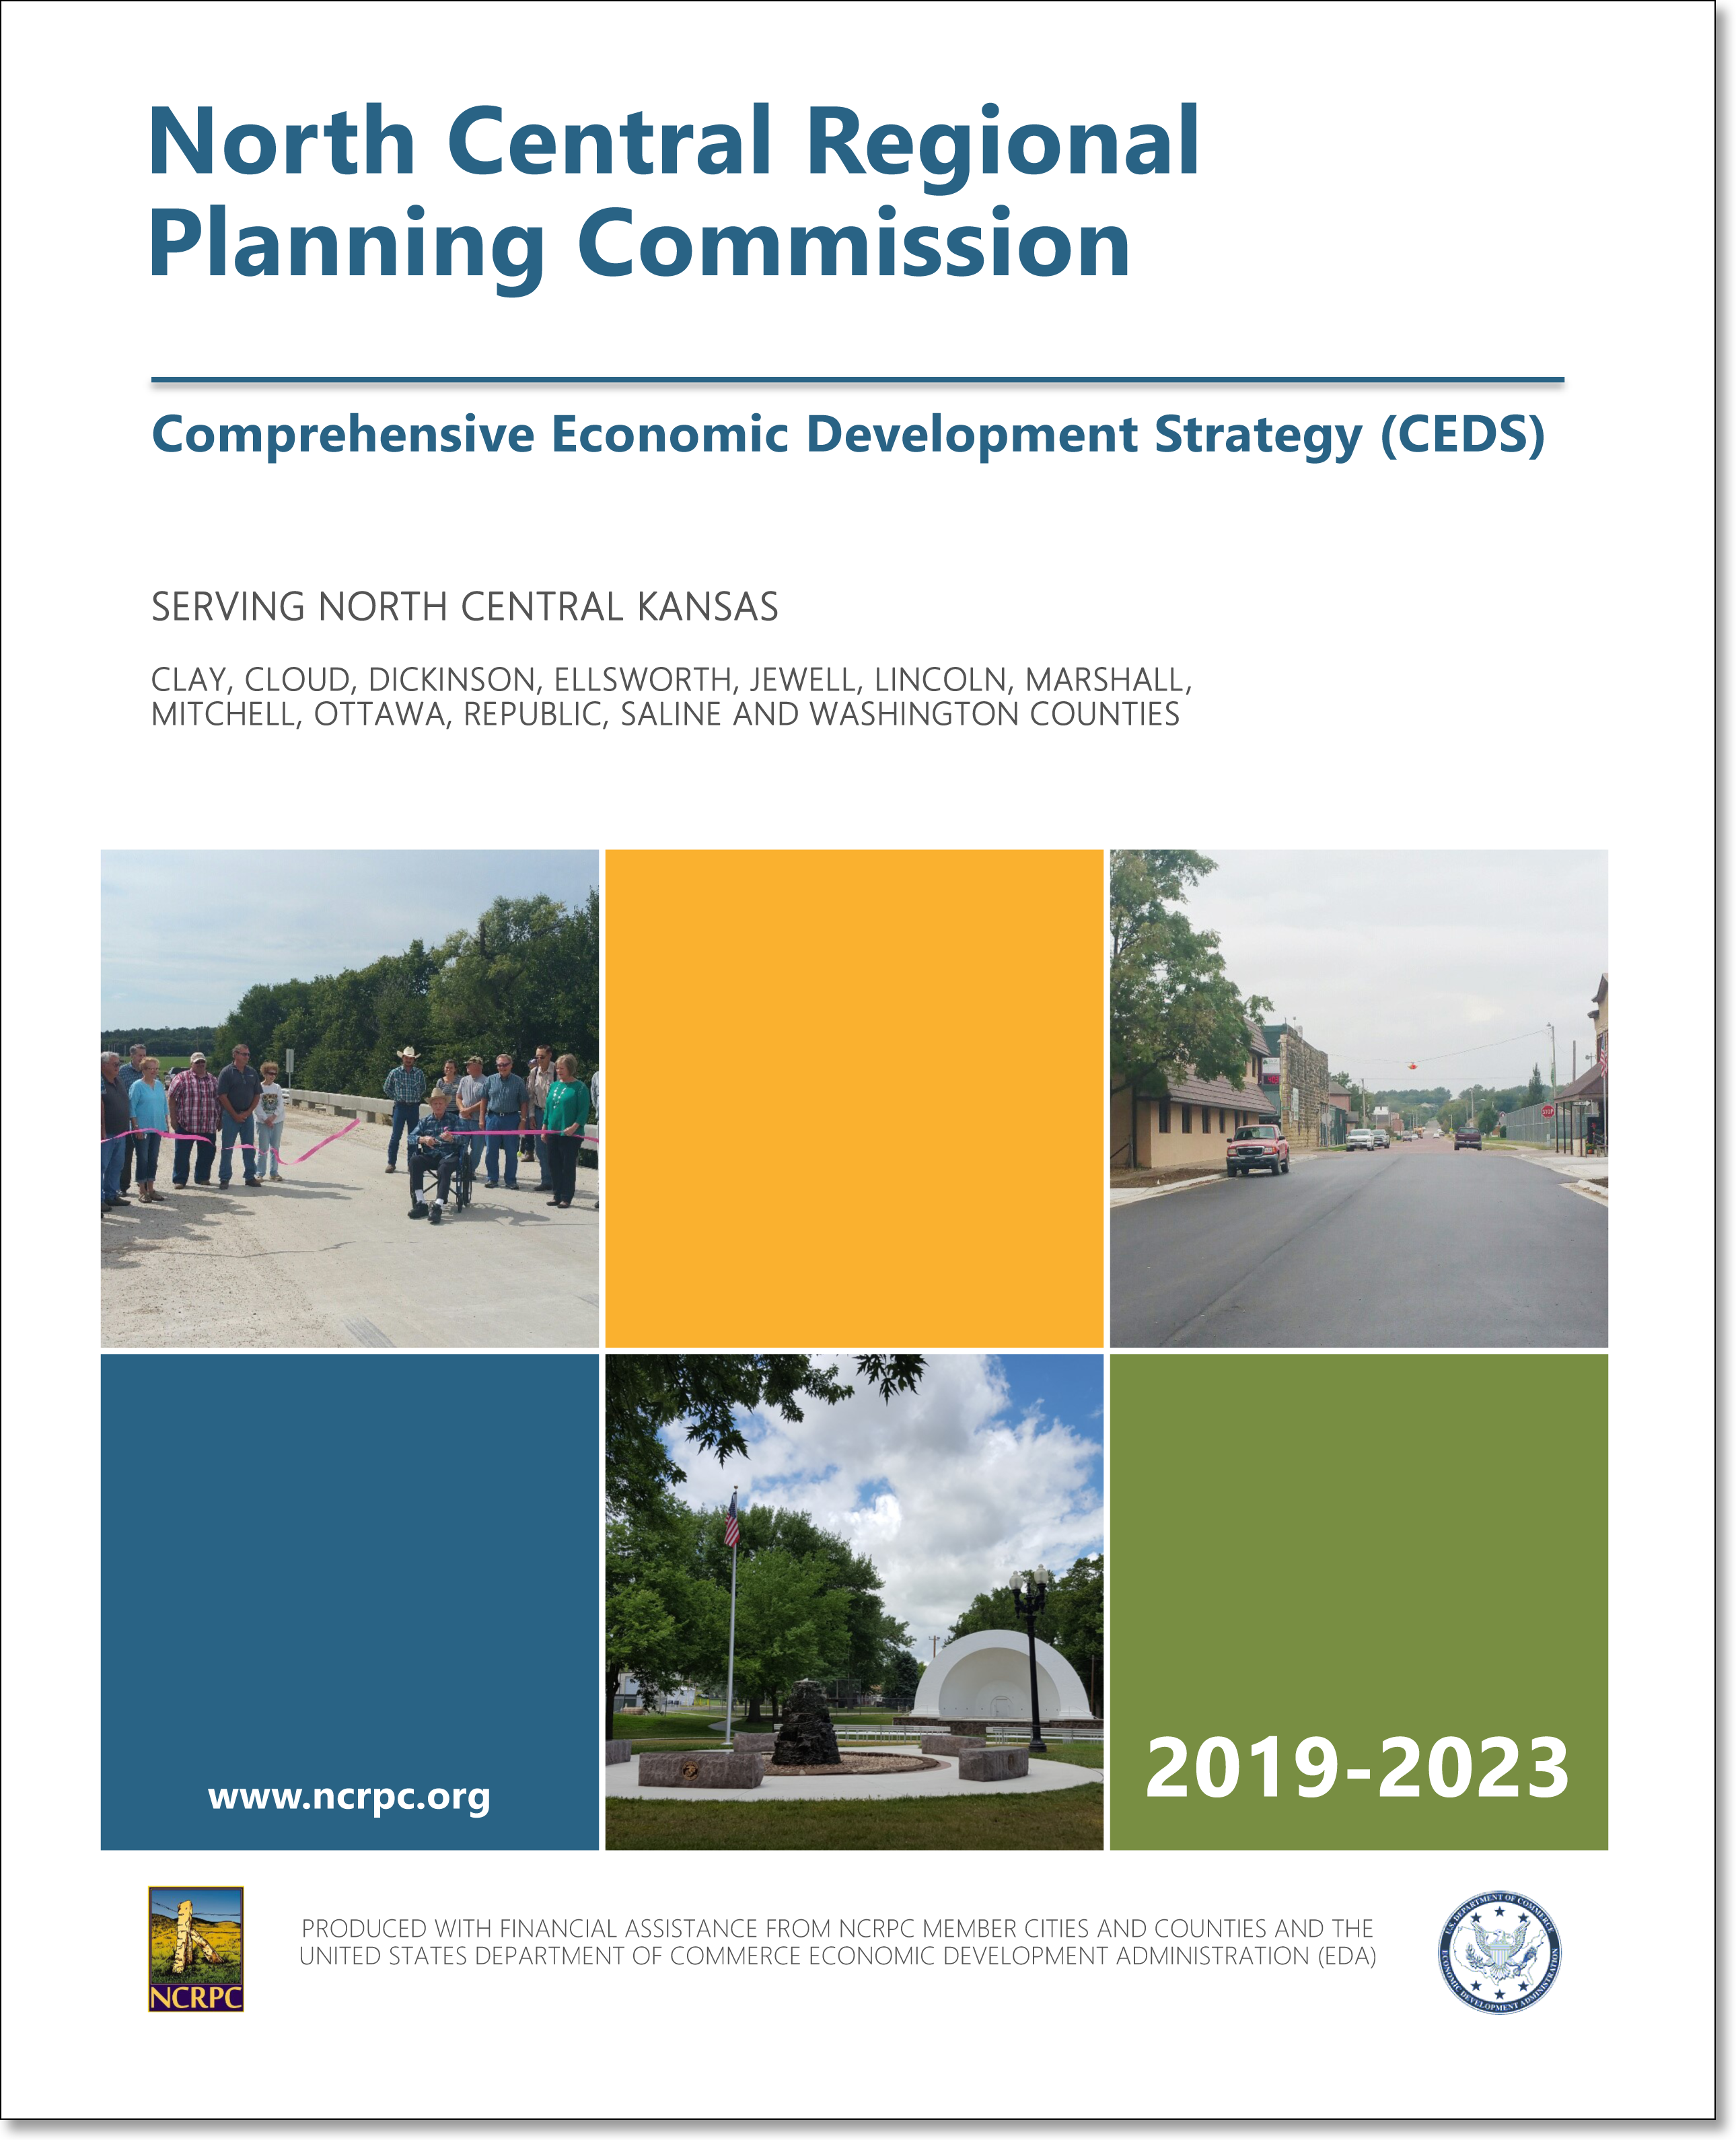 Image of North Central Regional Planning Commission Comprehensive Economic Development Strategy